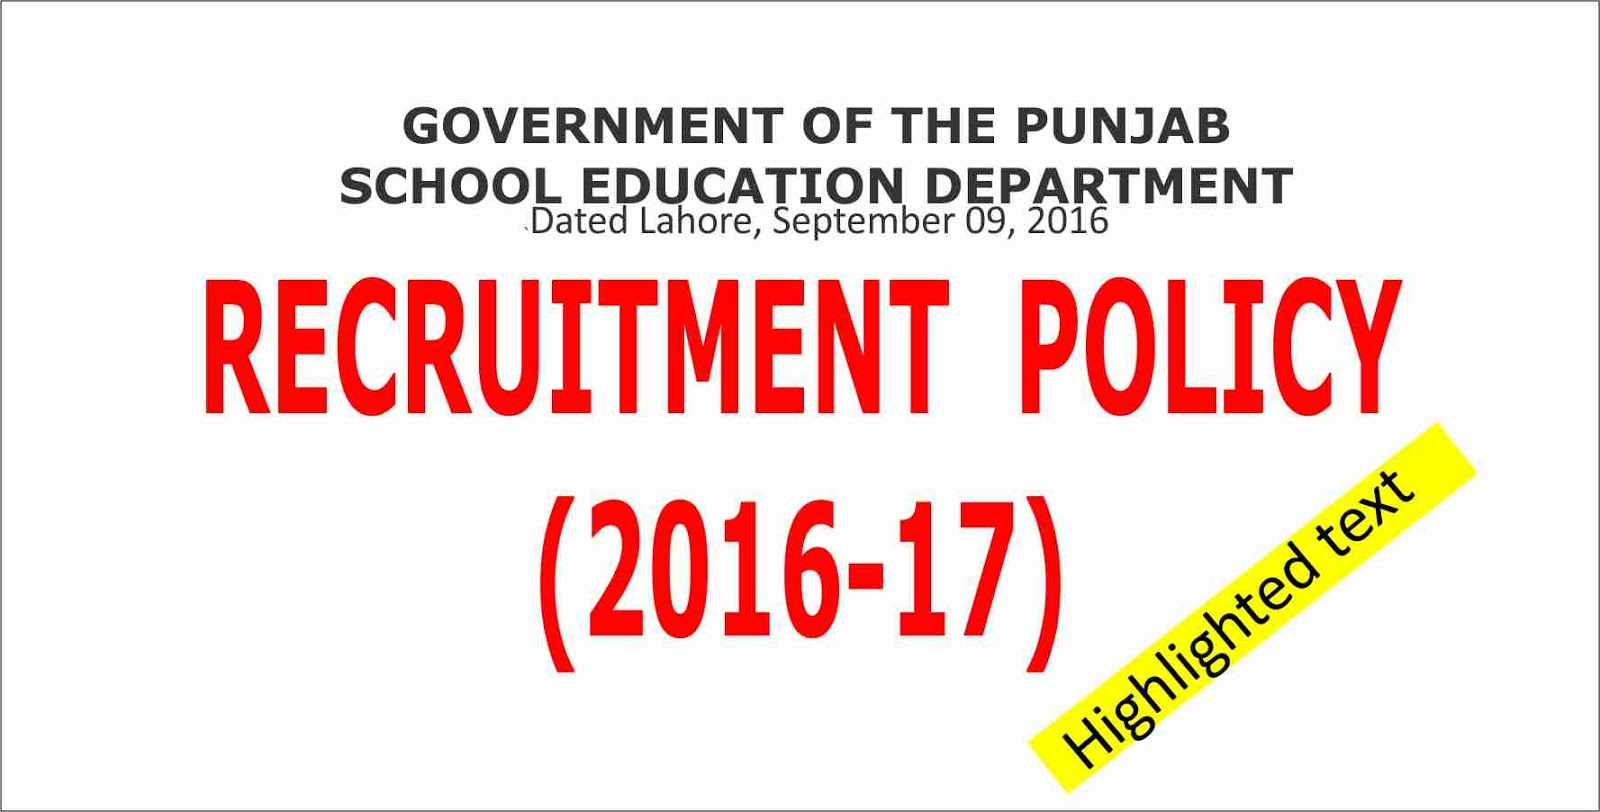 EASY NTS (Update info about Jobs in Pakistan): GOVERNMENT OF